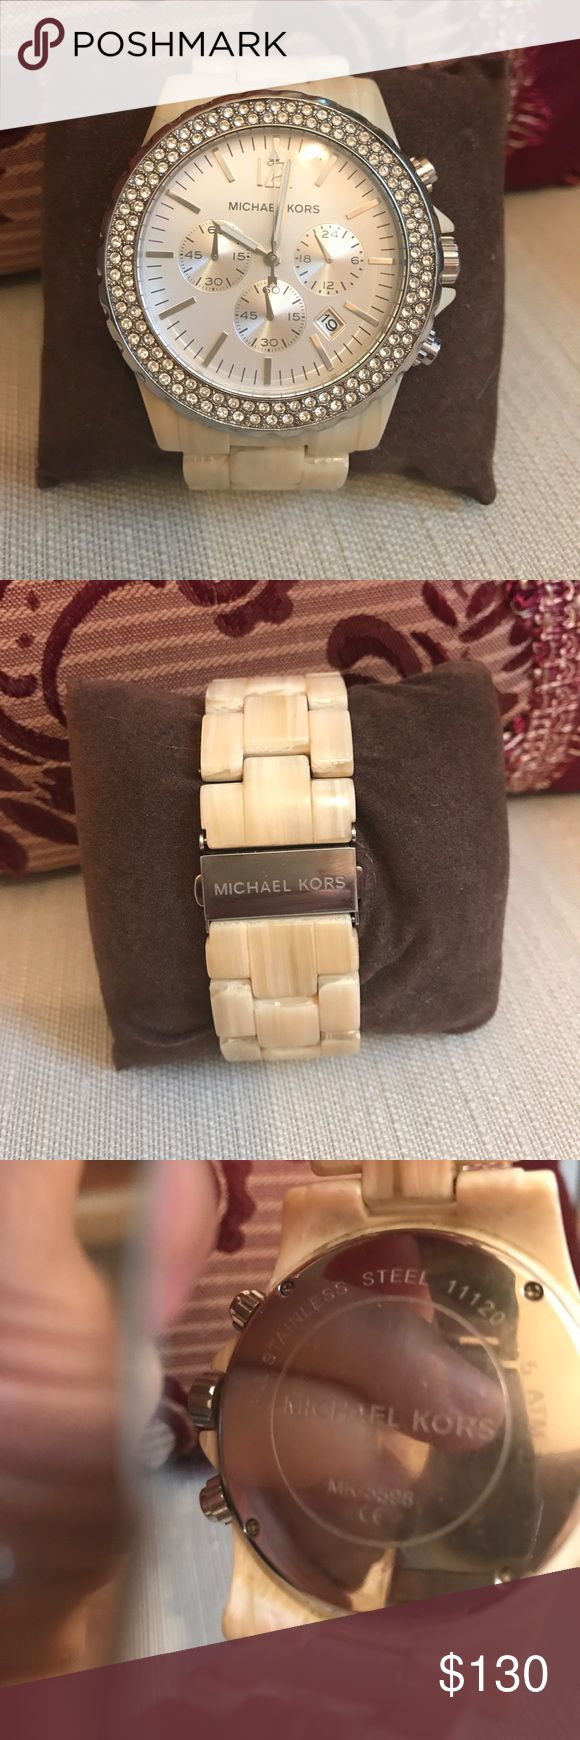 😊Michael Kors Tortoise watch Excellent Condition.  Beautiful silver tone with rhinestone accented face.  A real beauty. Fits an average wrist size.  Big statement face. Michael Kors Accessories Watches